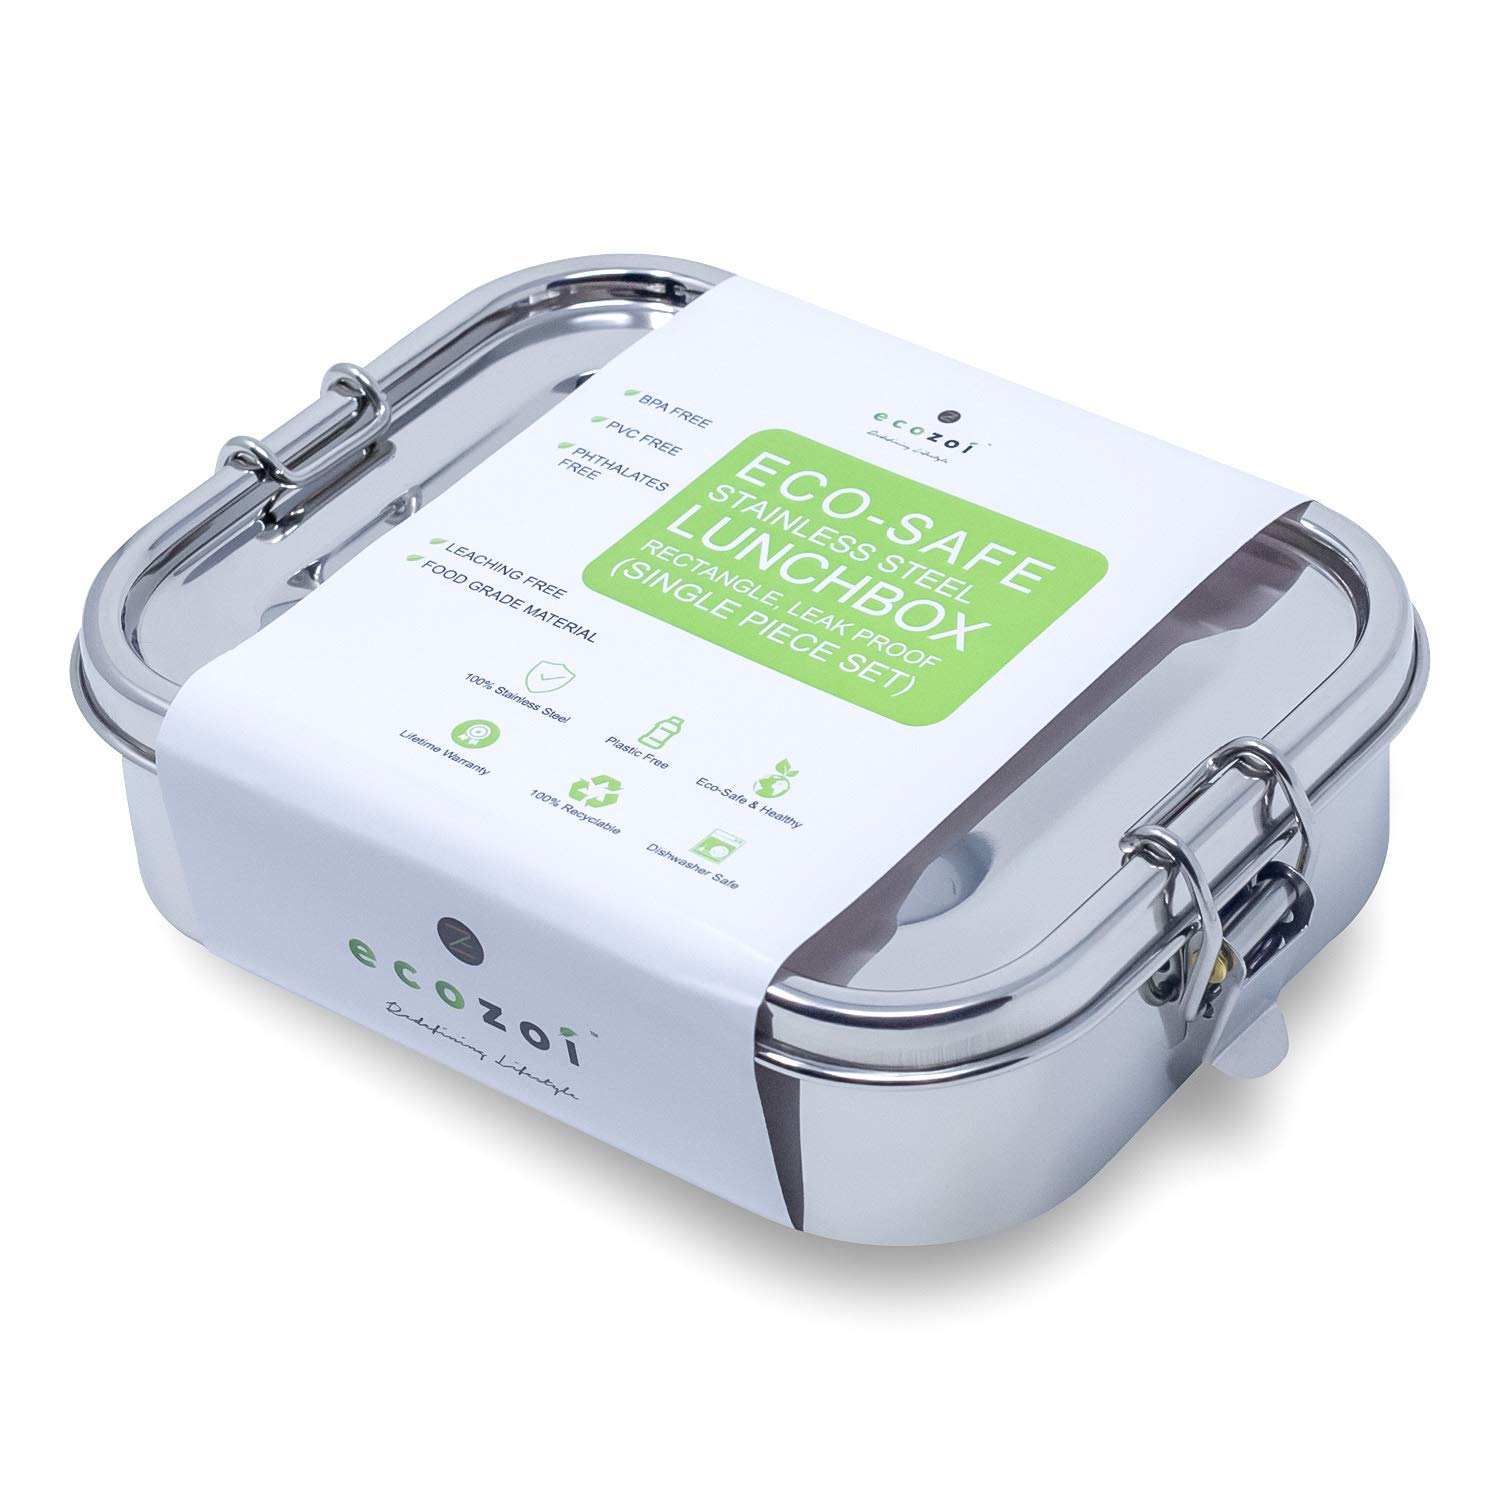 Ecozoi LEAK PROOF Stainless Steel 1-Tier Eco Lunch Box Metal Bento Box   BONUS POD and REDESIGNED Silicone Seal   Sustainable Zero Waste Eco Friendly Food Storage Container